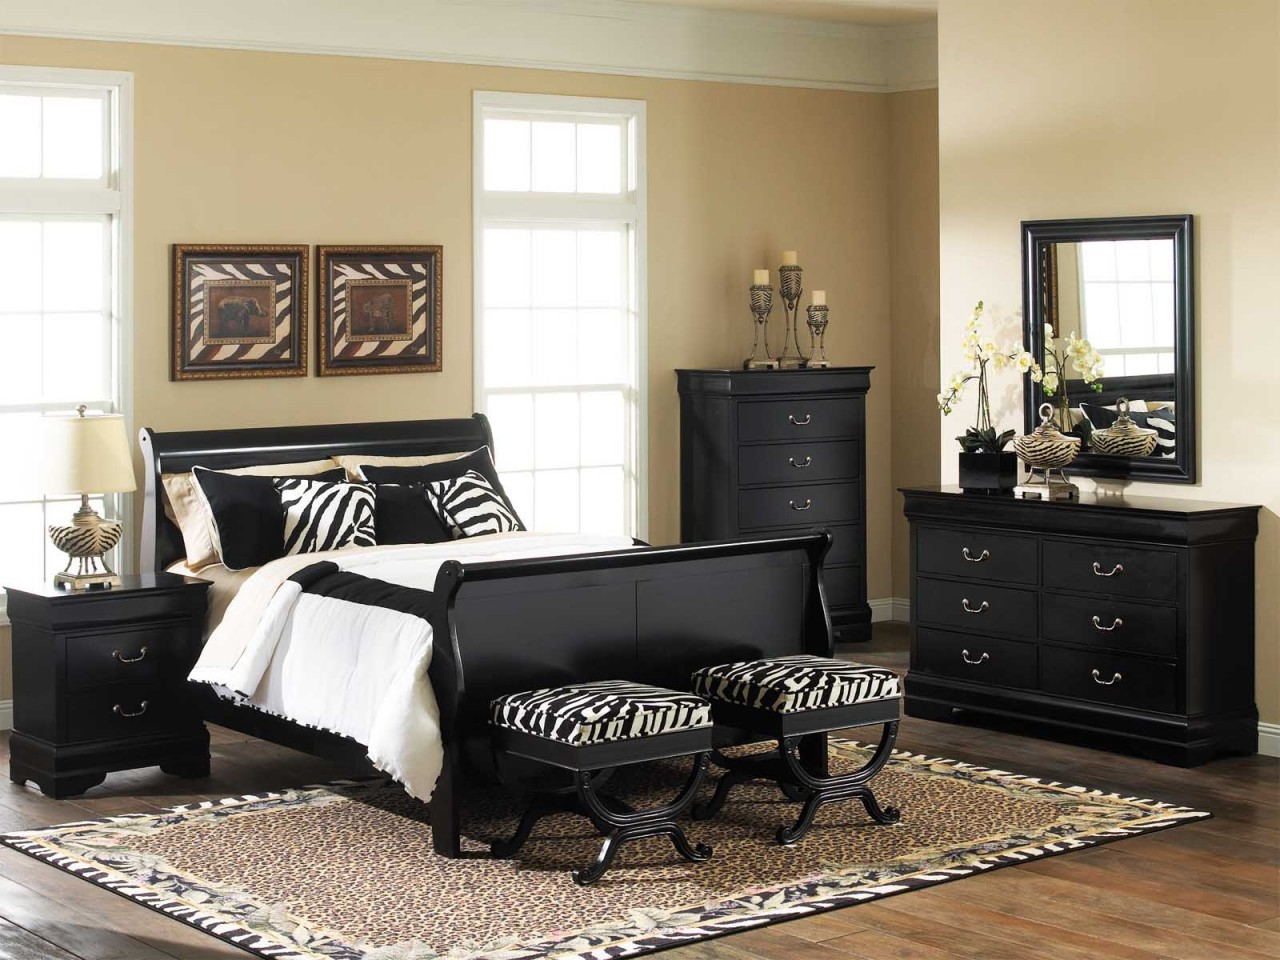 Black bedroom set full size of bedroom furniture sets king for Front door furniture sets